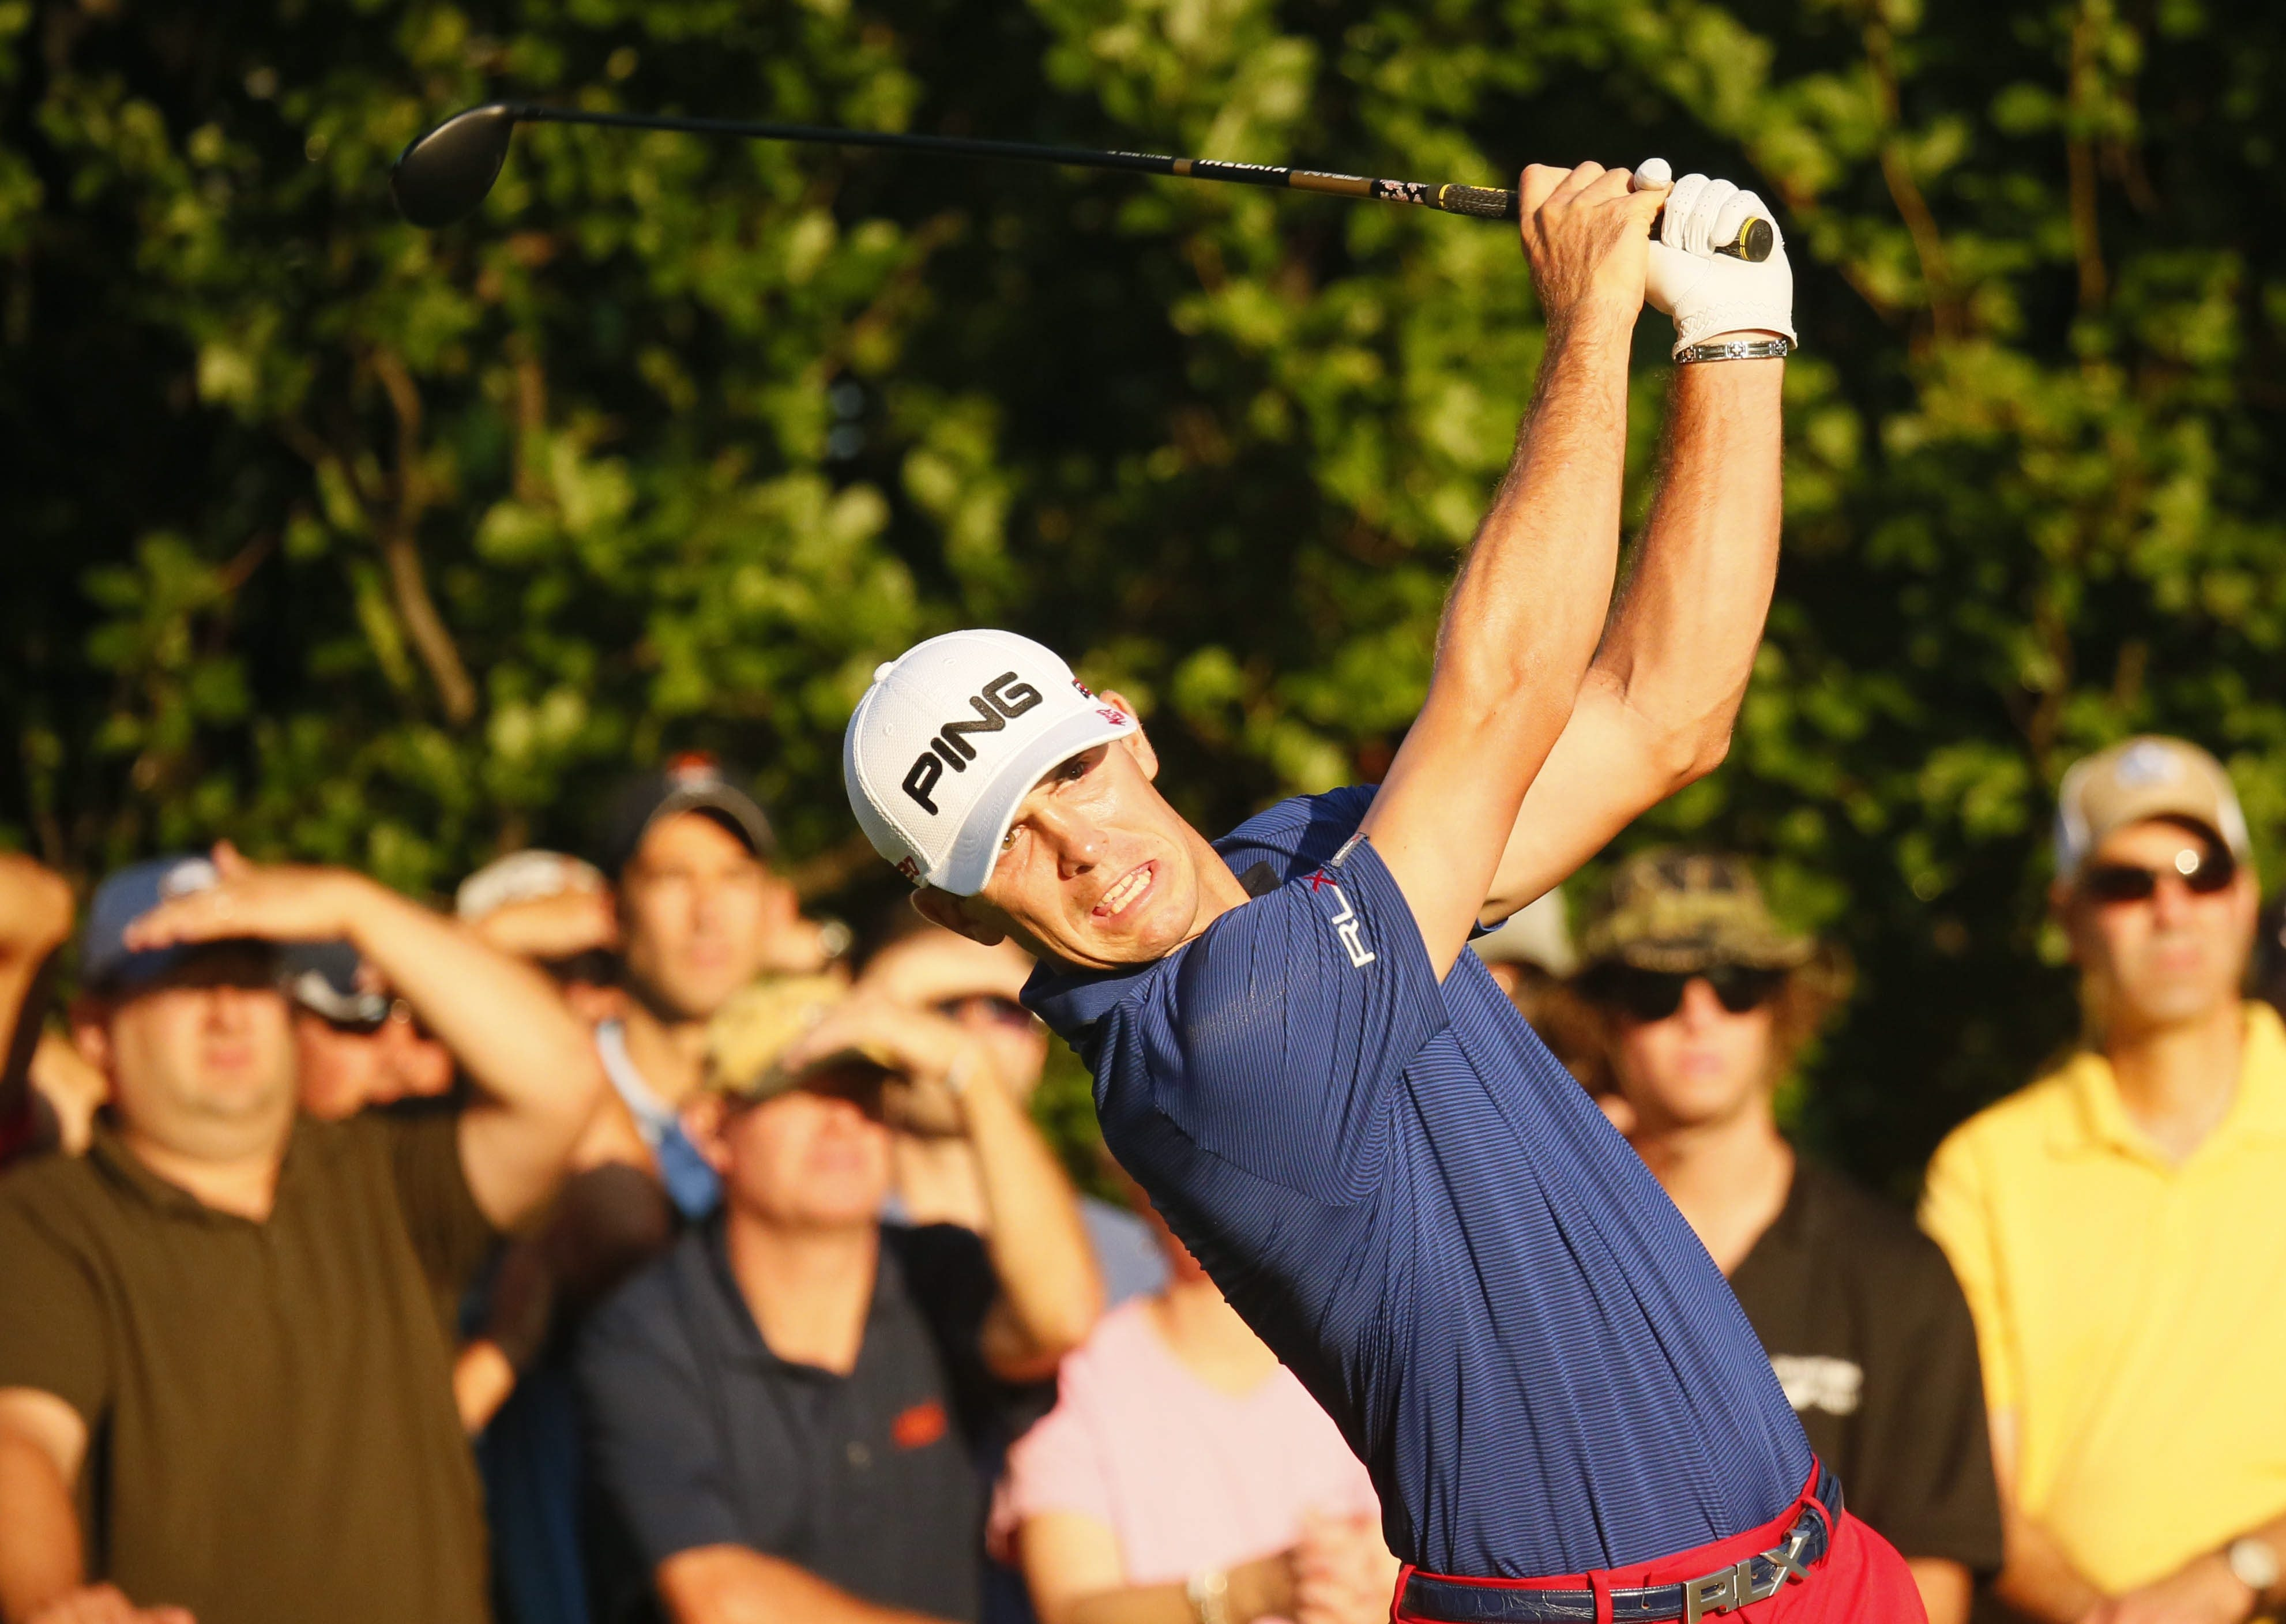 Billy Horschel, who played in the Porter Cup three times, tees off on No. 10 during his round of 1-under.